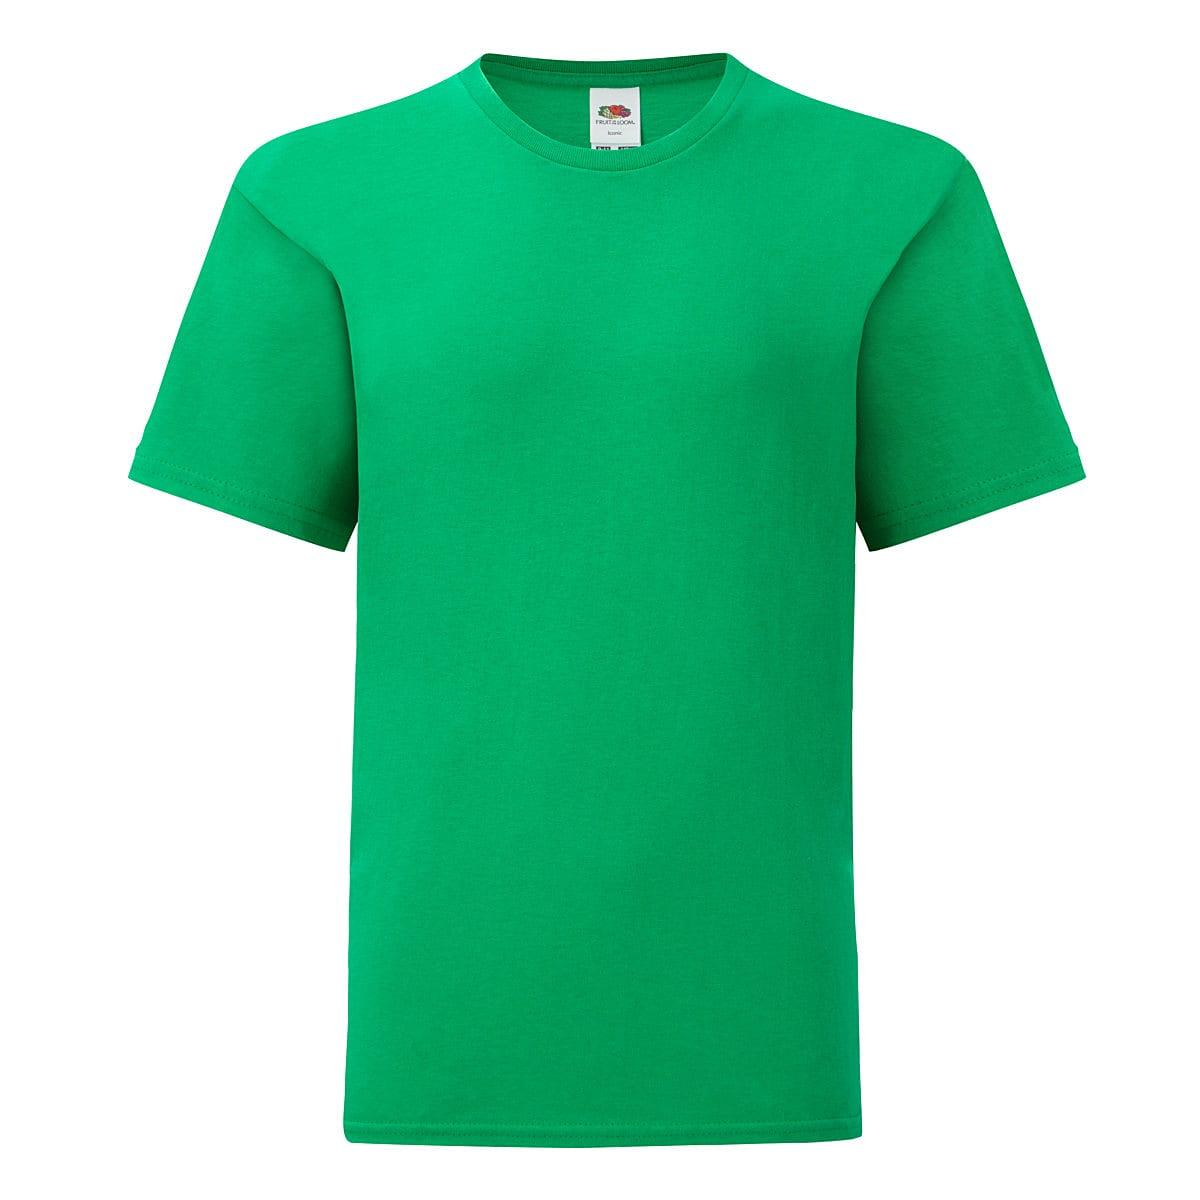 Fruit Of The Loom Kids Iconic T-Shirt in Kelly Green (Product Code: 61023)